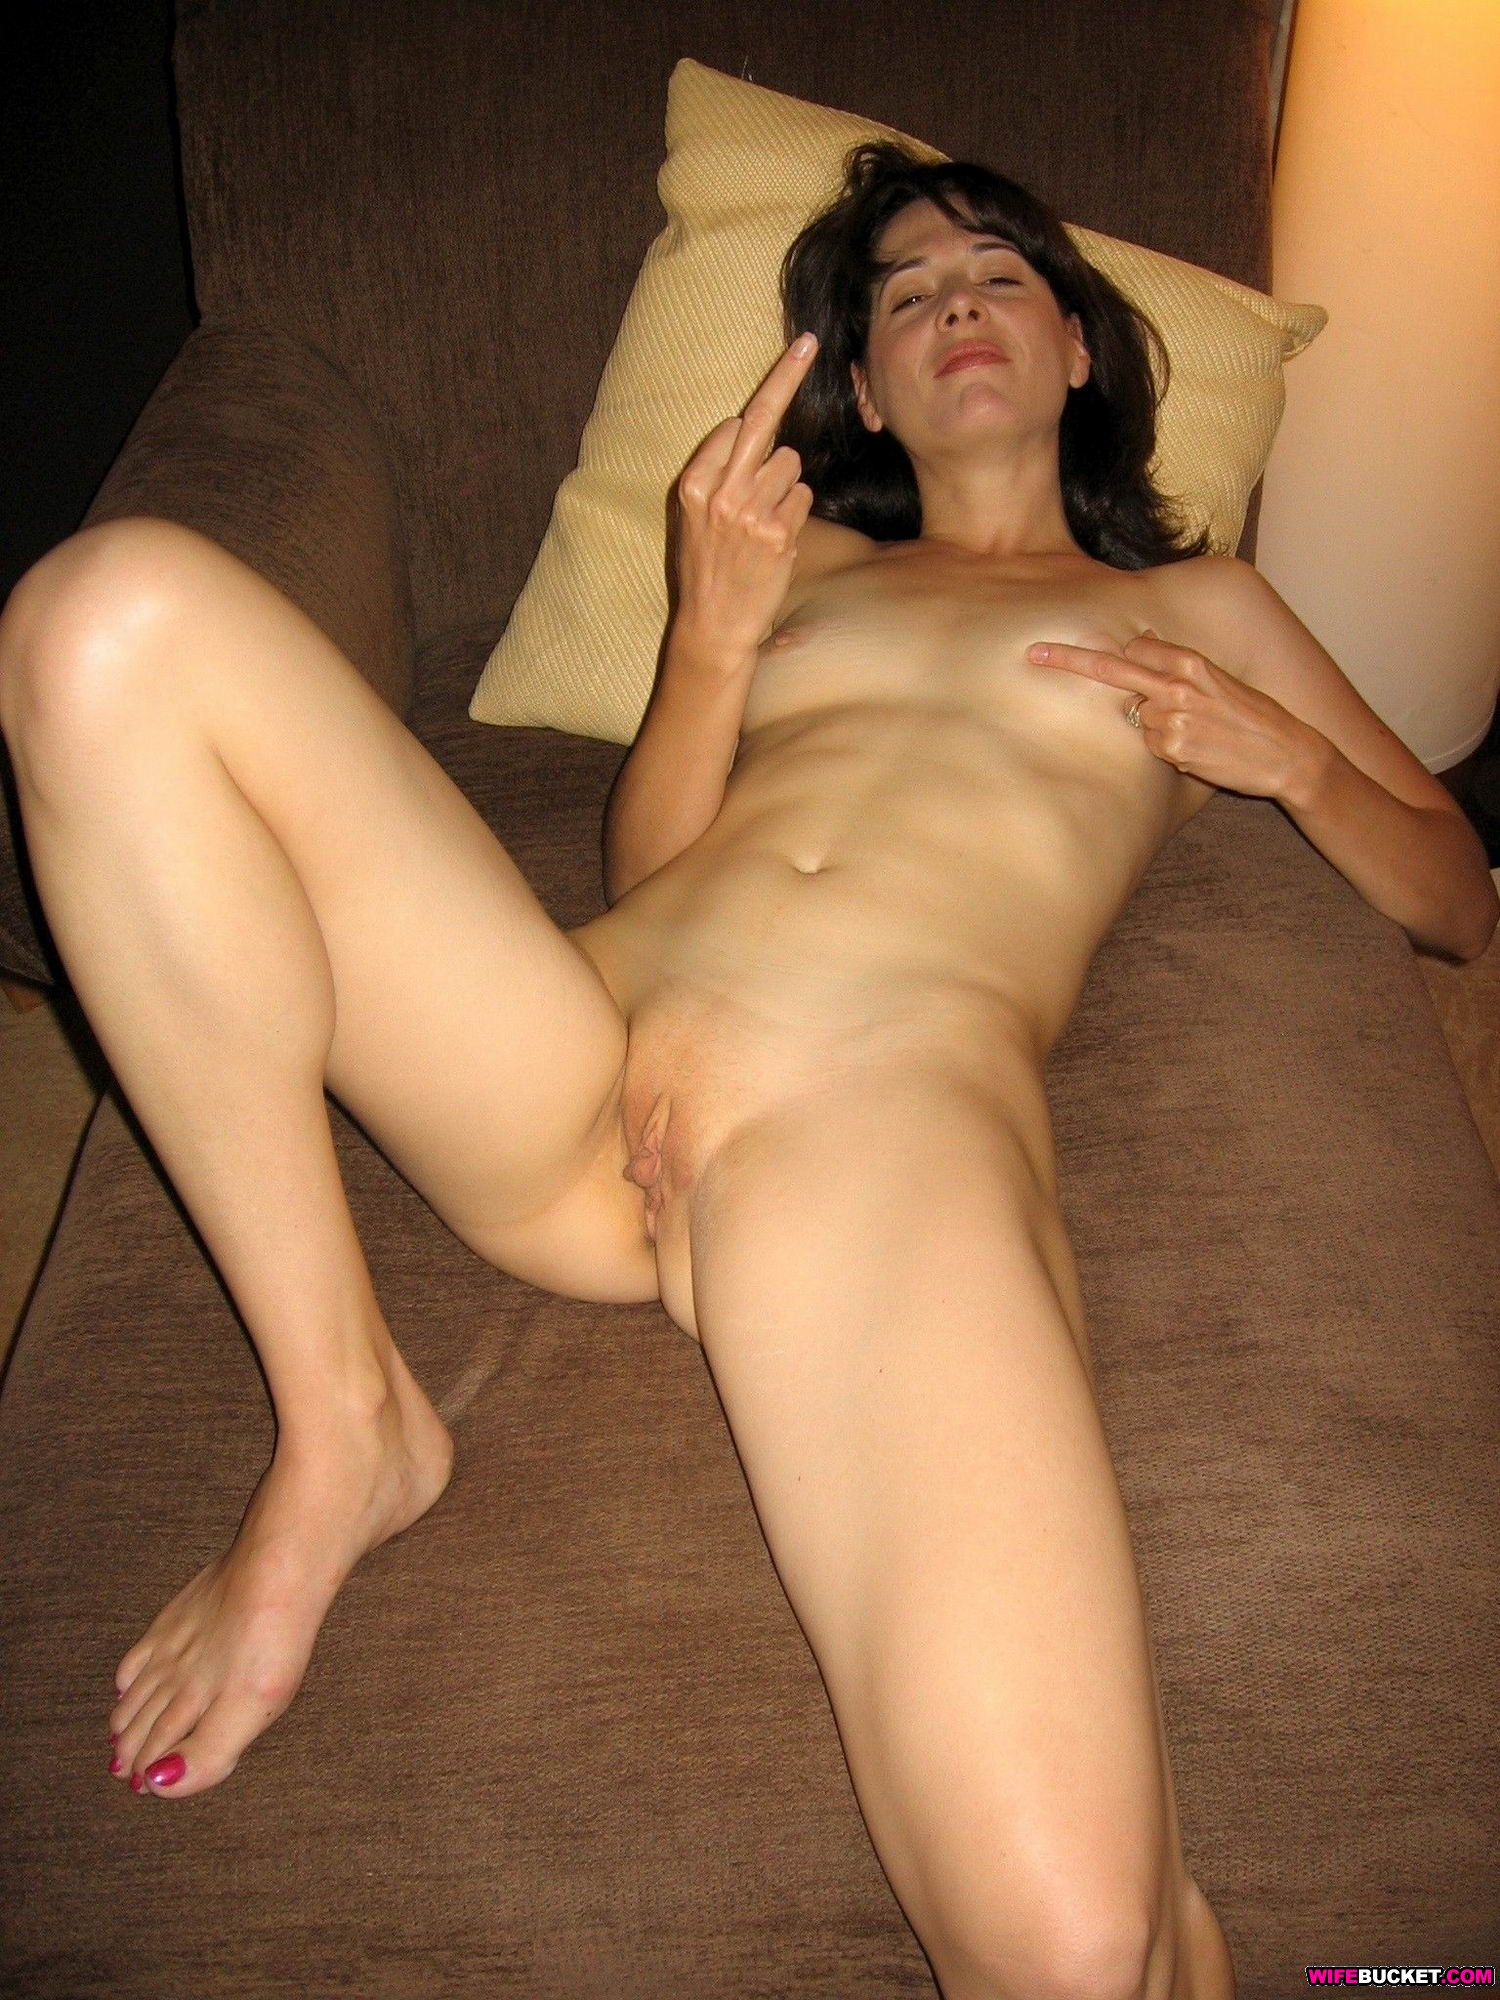 Wife Bucket - Naked wives, home porn, amateur swingers ...